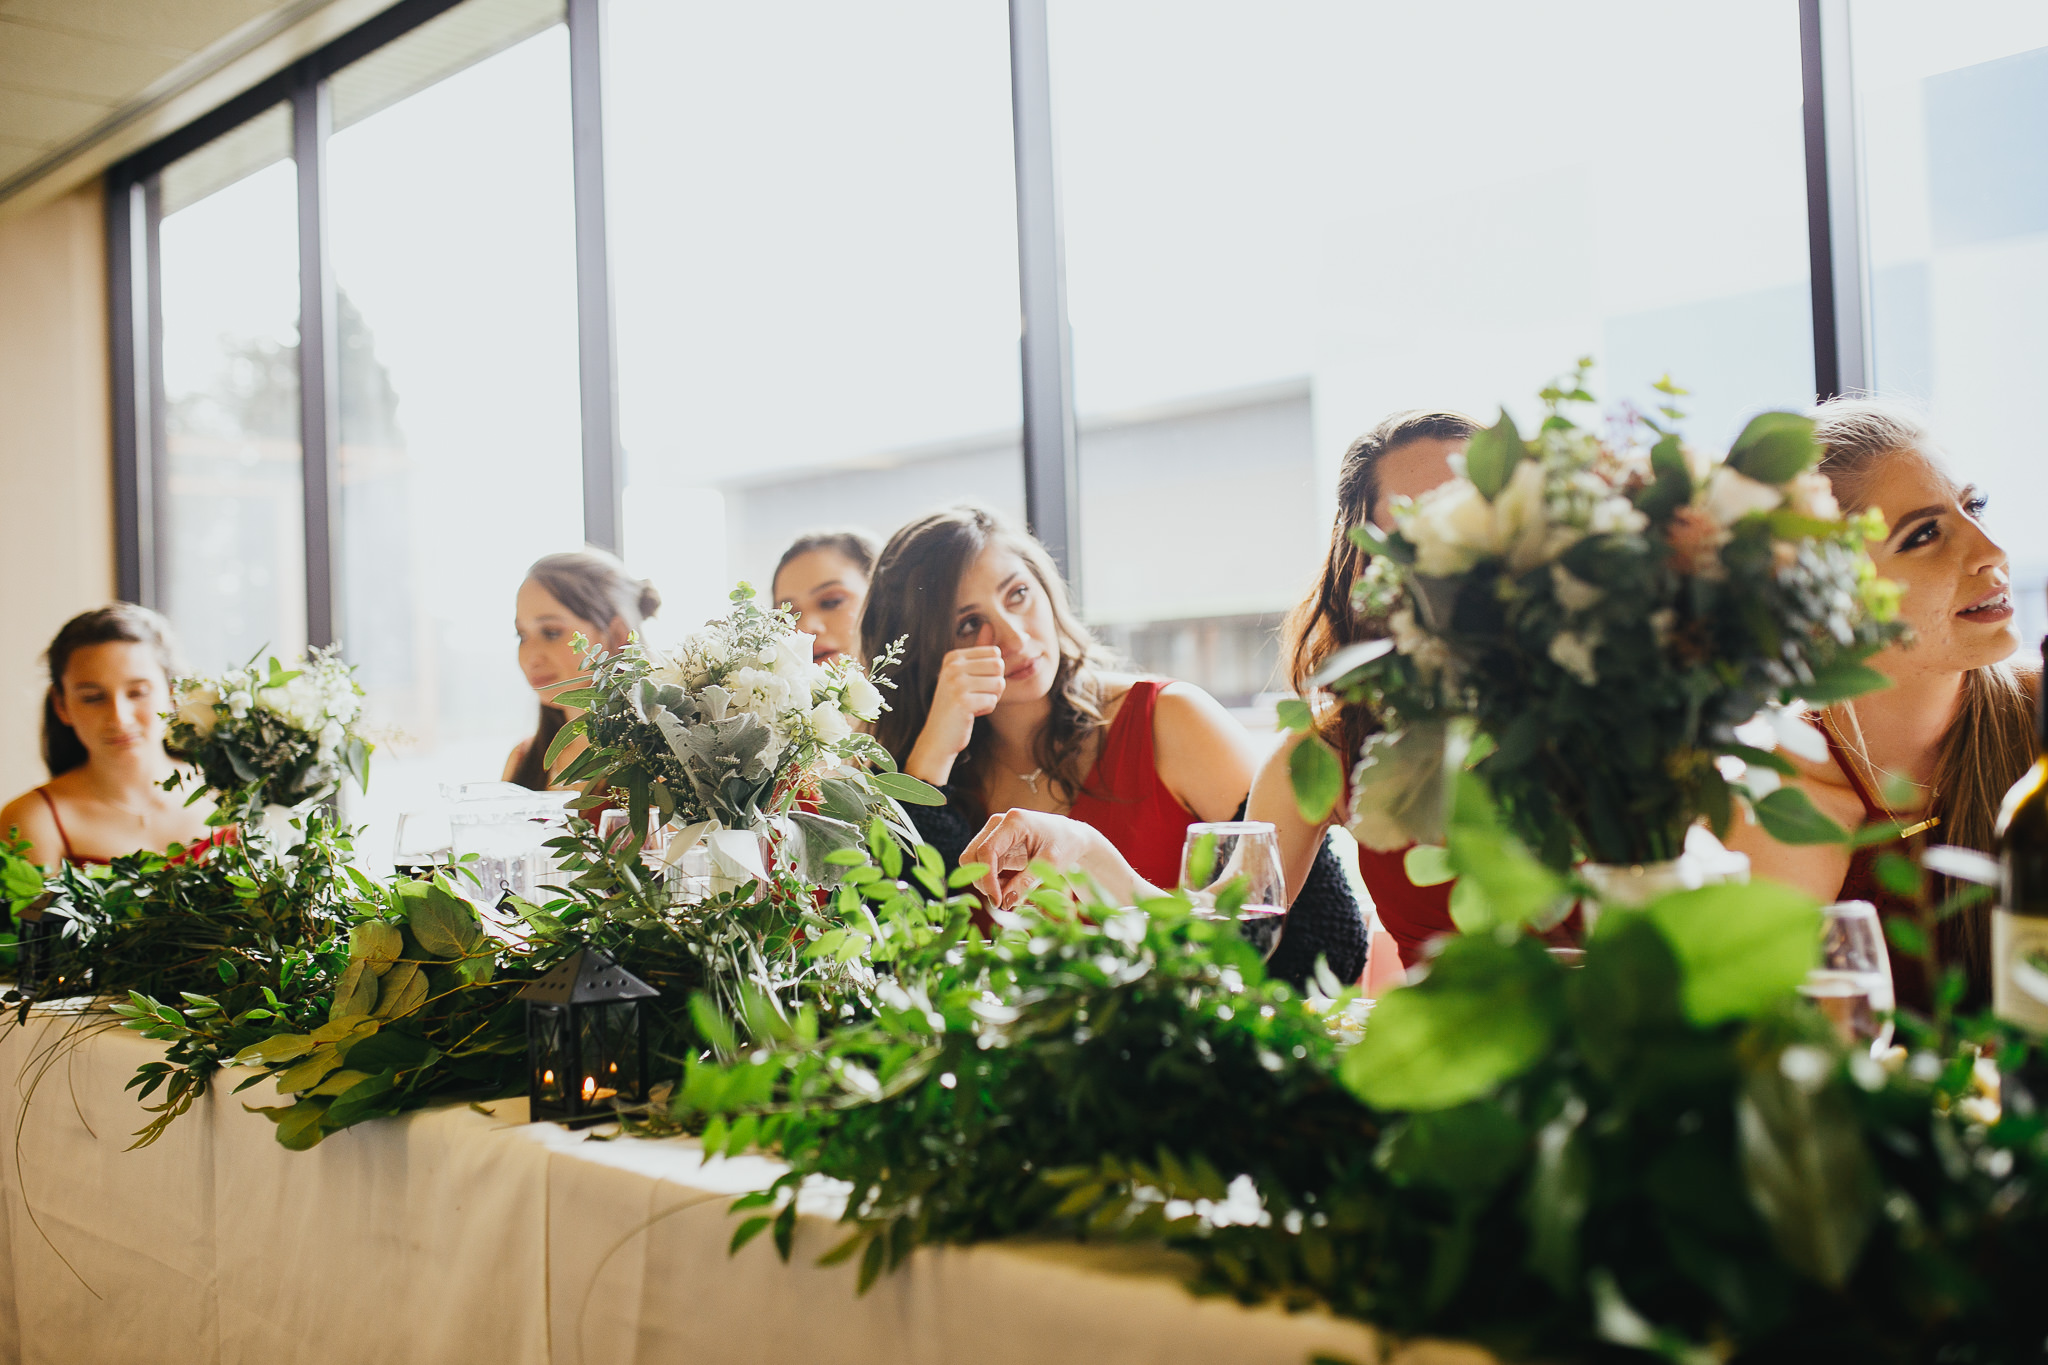 Archer Inspired Photography Shelby and Ben Wedding Sally Tomatoes NorCal Rohnert Park California-53.jpg